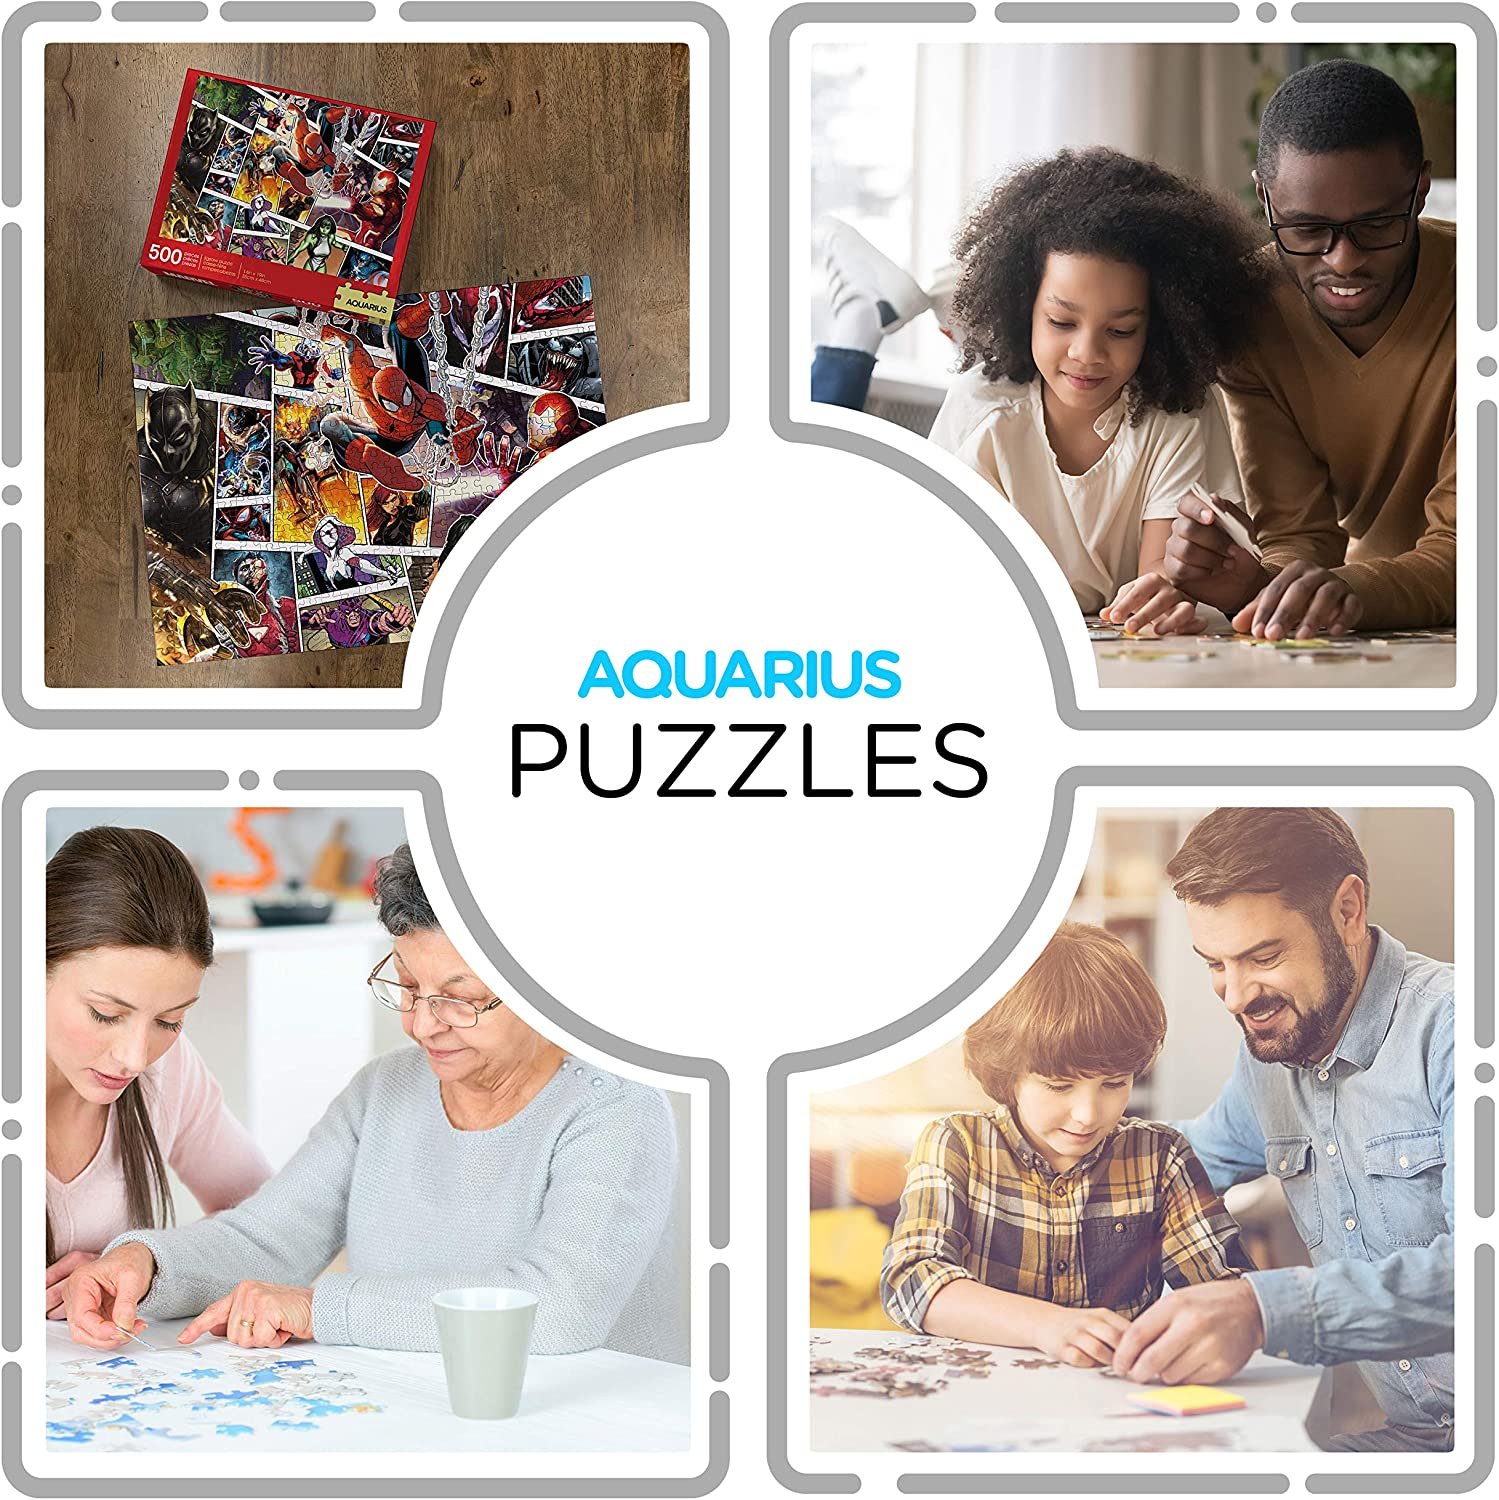 - Glare Free AQUARIUS Marvel Puzzle Virtually No Puzzle Dust 500 Piece Jigsaw Puzzle Officially Licensed Marvel Merchandise /& Collectibles 14 x 19 Inches Precision Fit